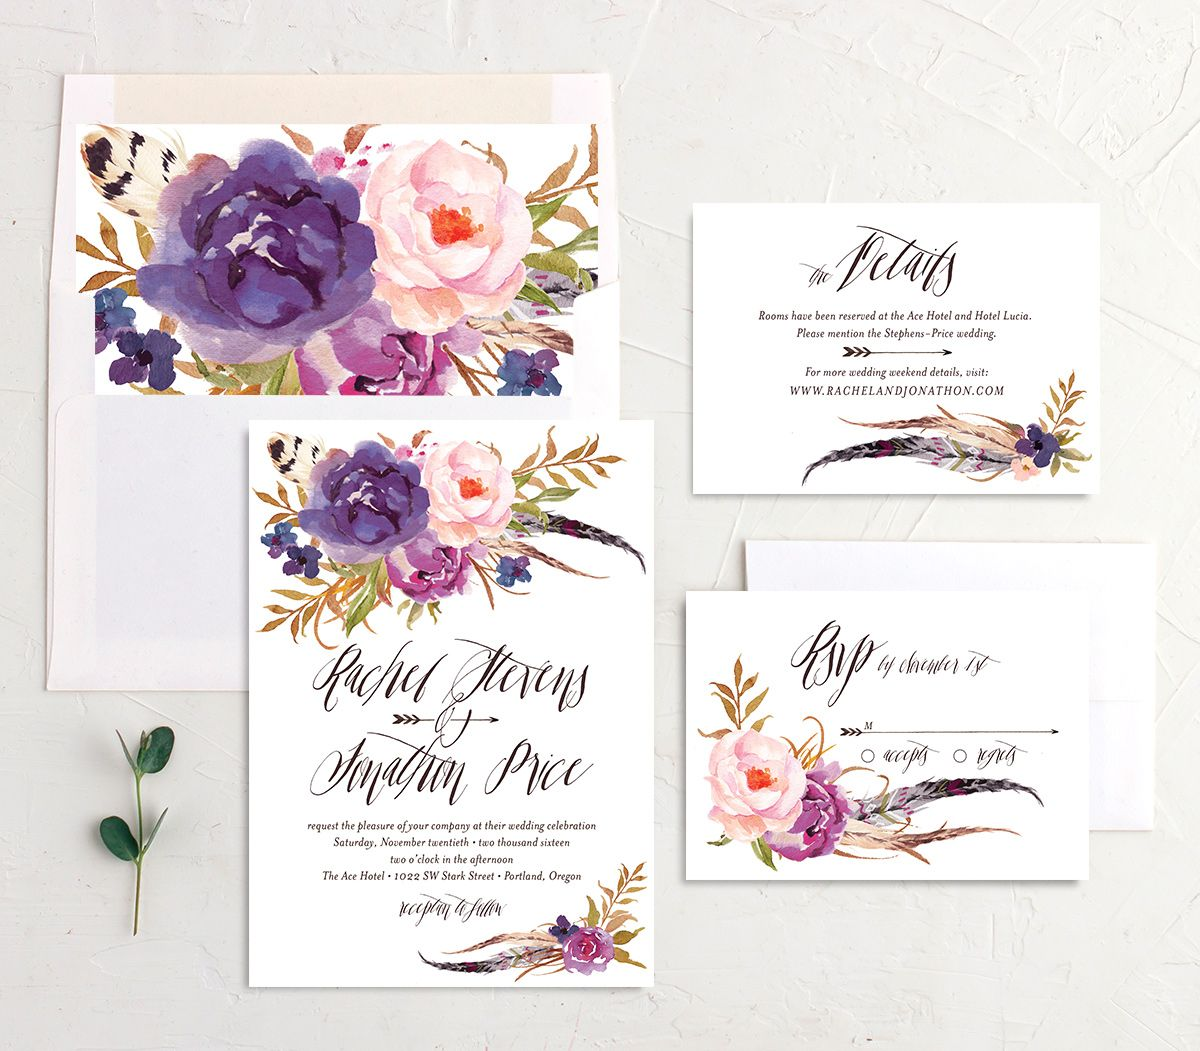 bohemian floral wedding invitation stationery suite in purple